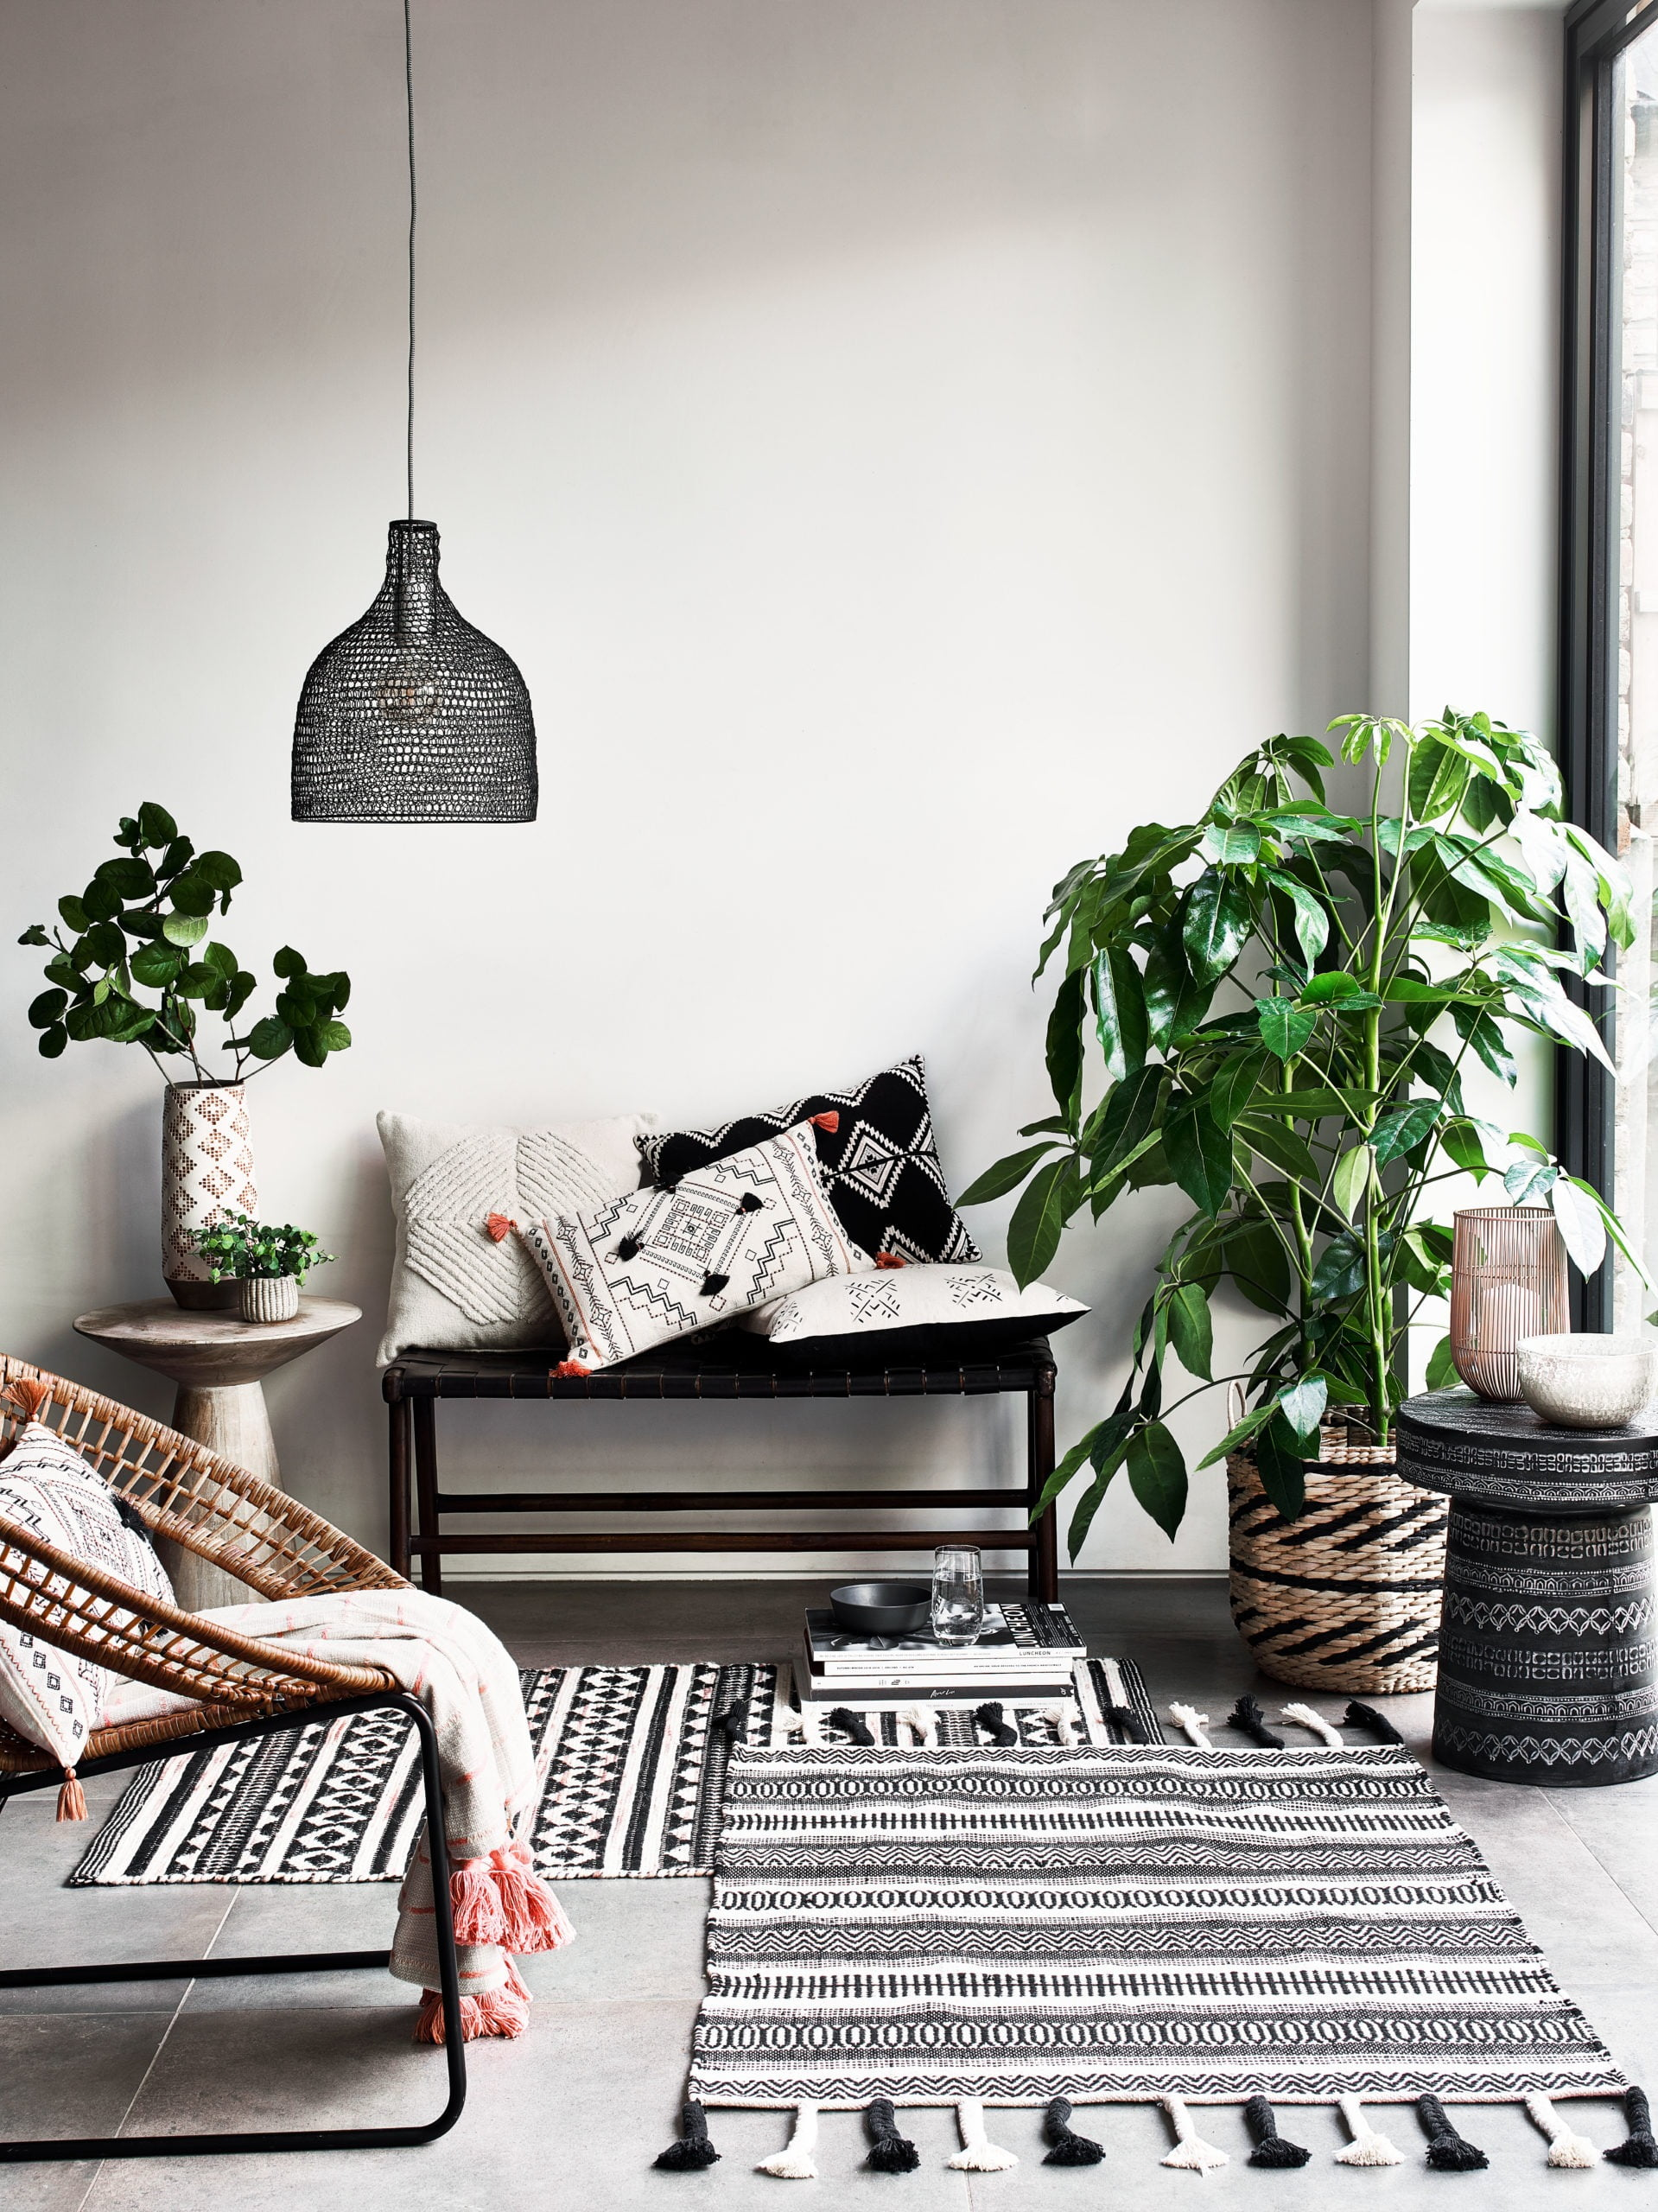 Tips and tricks for styling your home with intention so that you can  create a space you'll love by interior stylist Maxine Brady from we love home blog